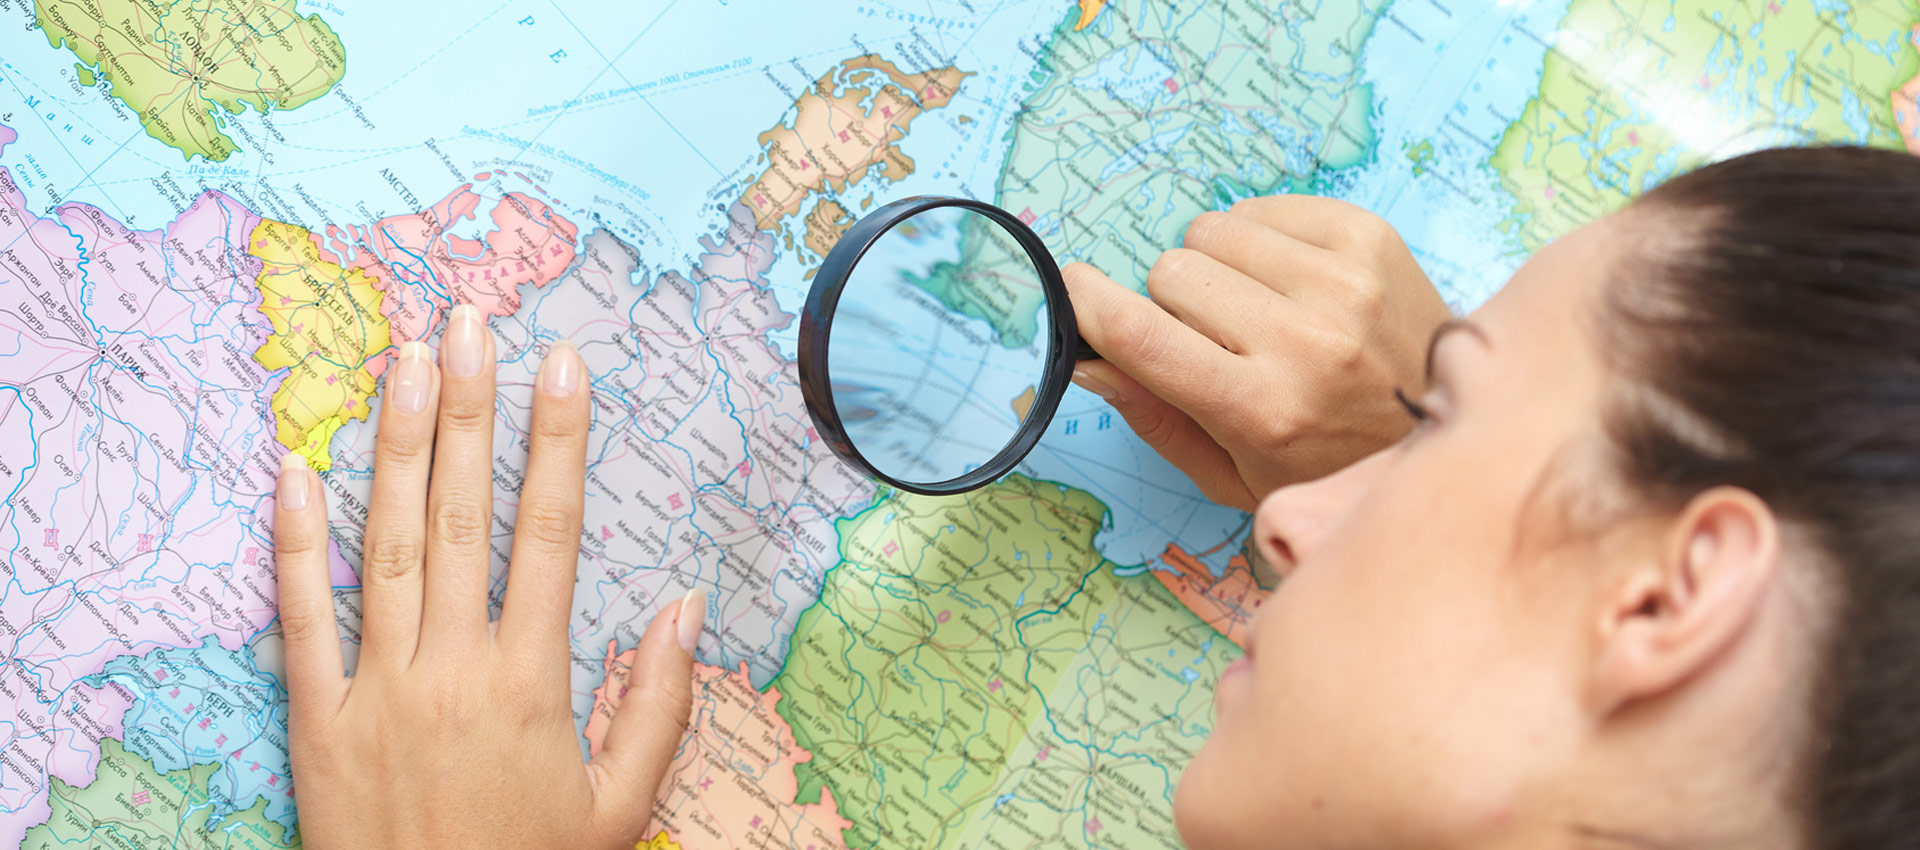 WE HAVE CONTACTS ALL OVER THE WORLD